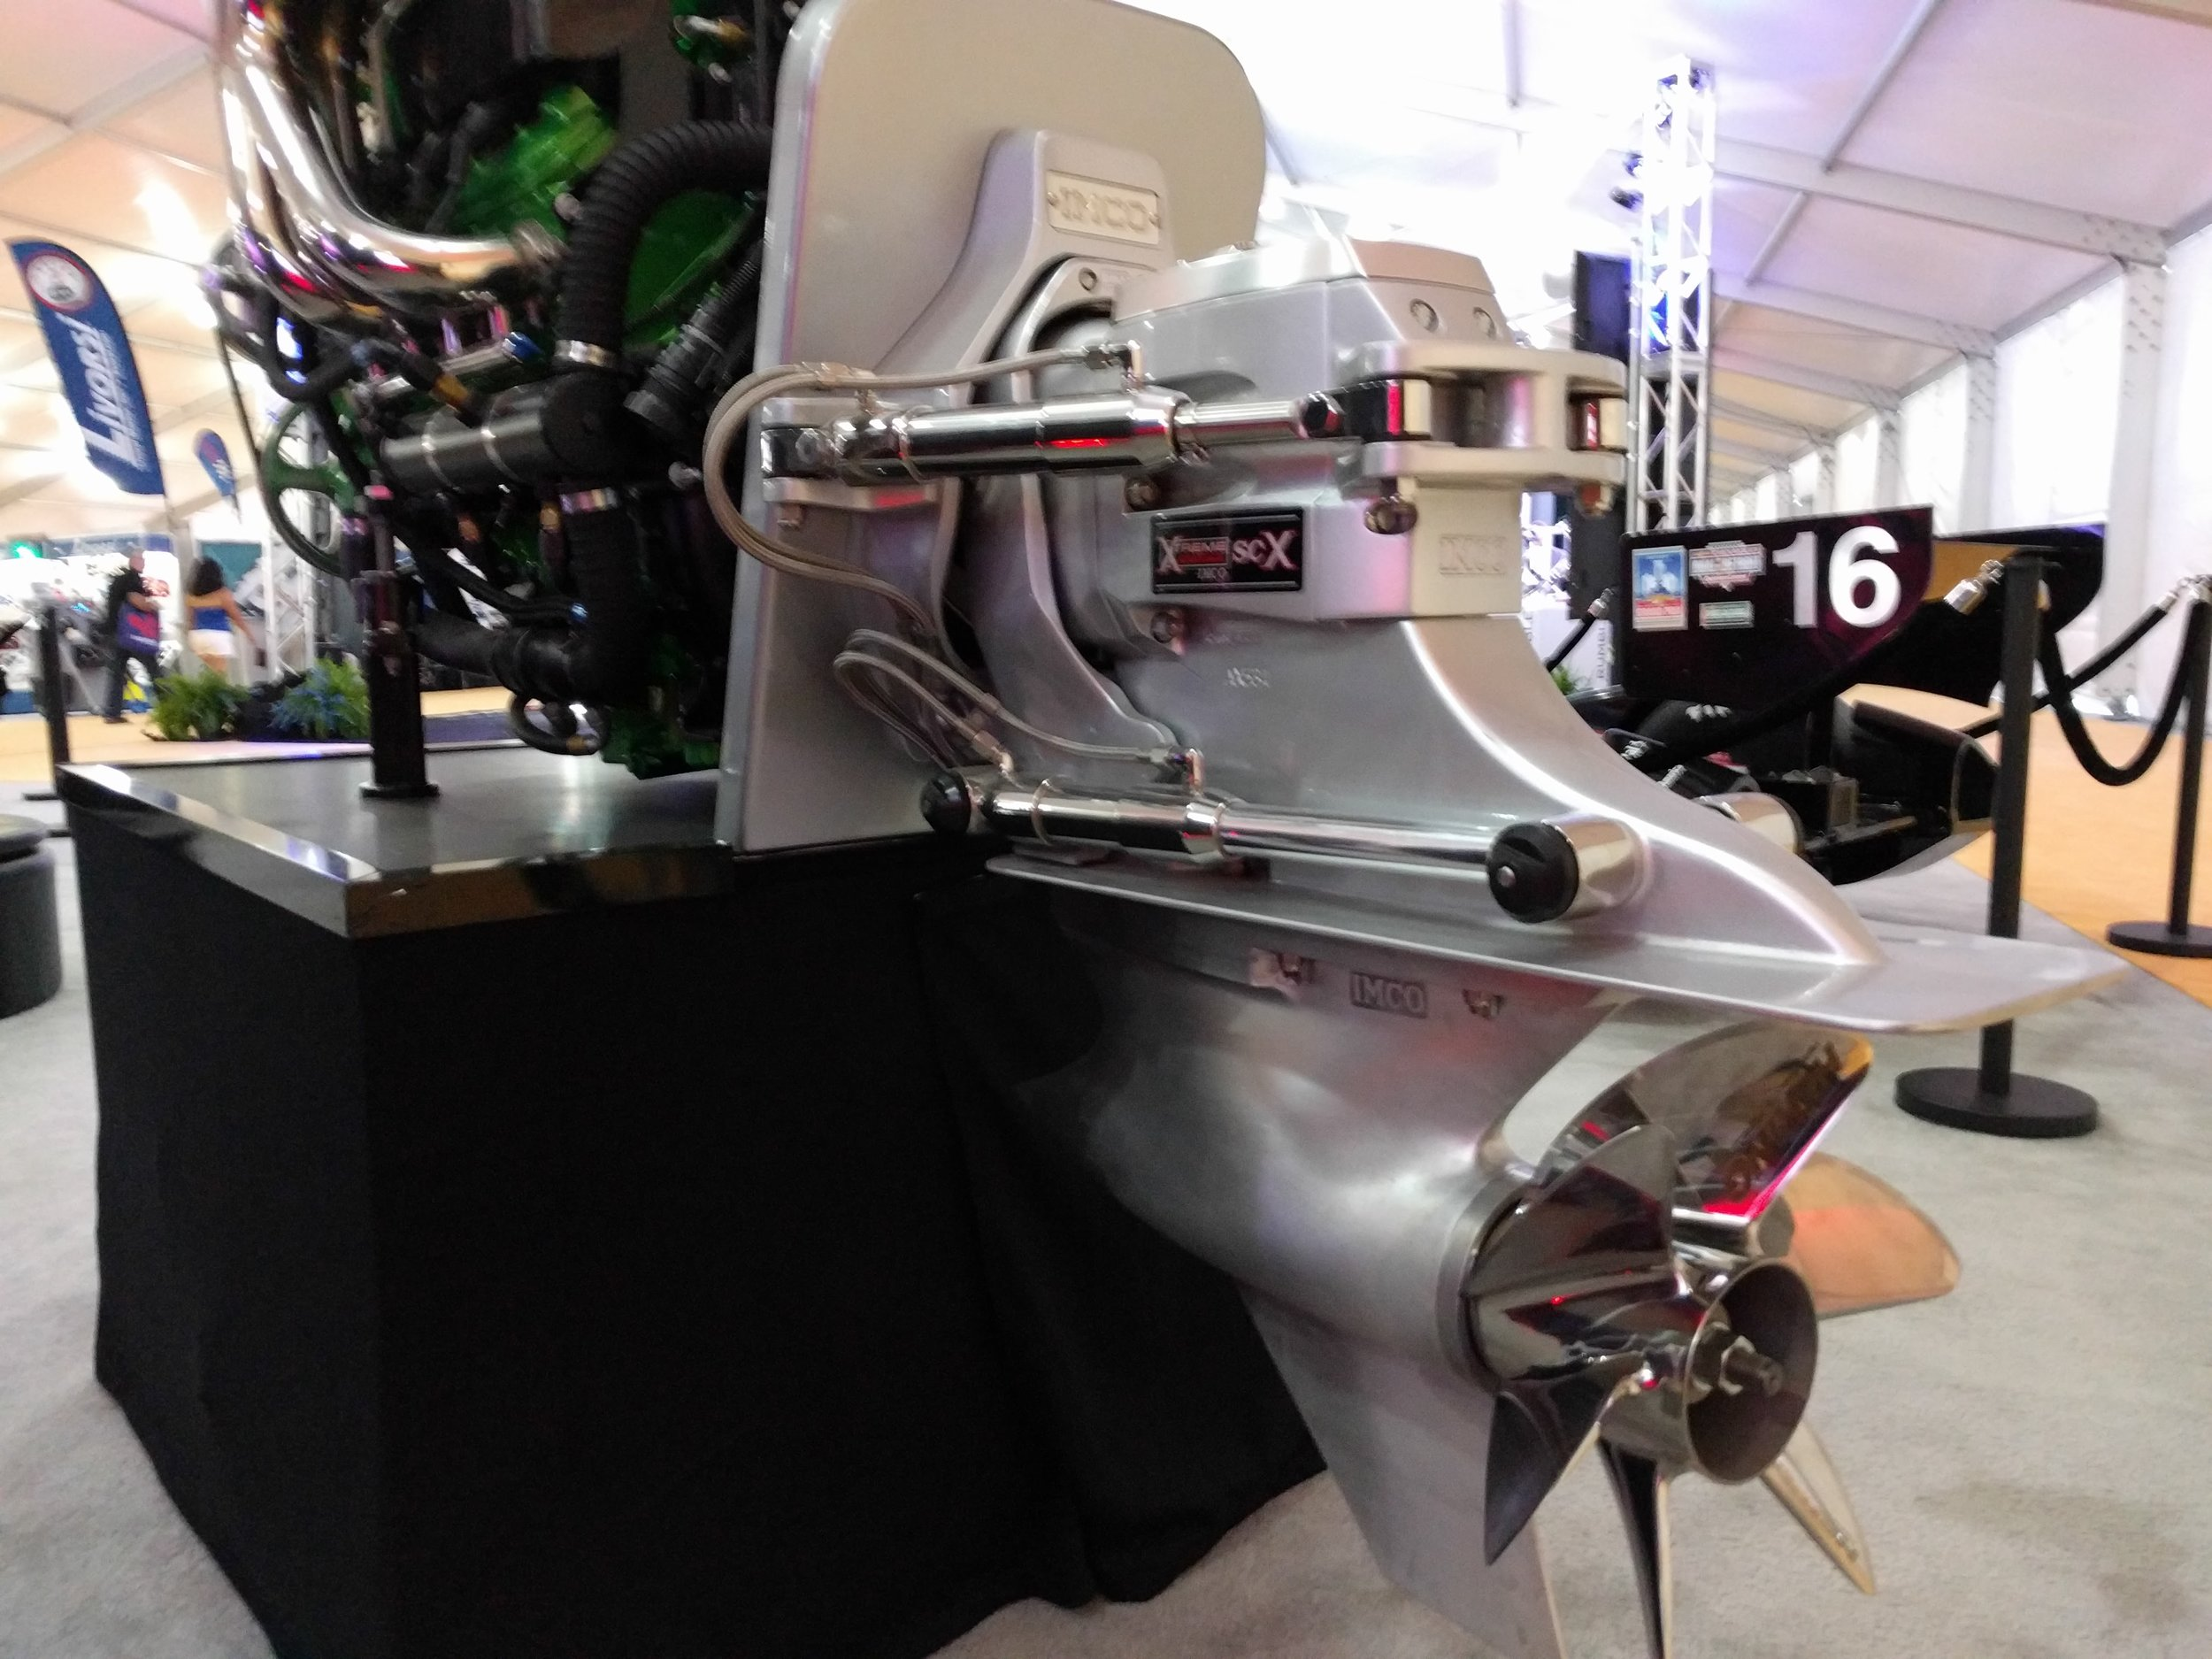 Power - Imco makes performance sterndrives with their hydraulic system. Mated to an Ilmor engine here.